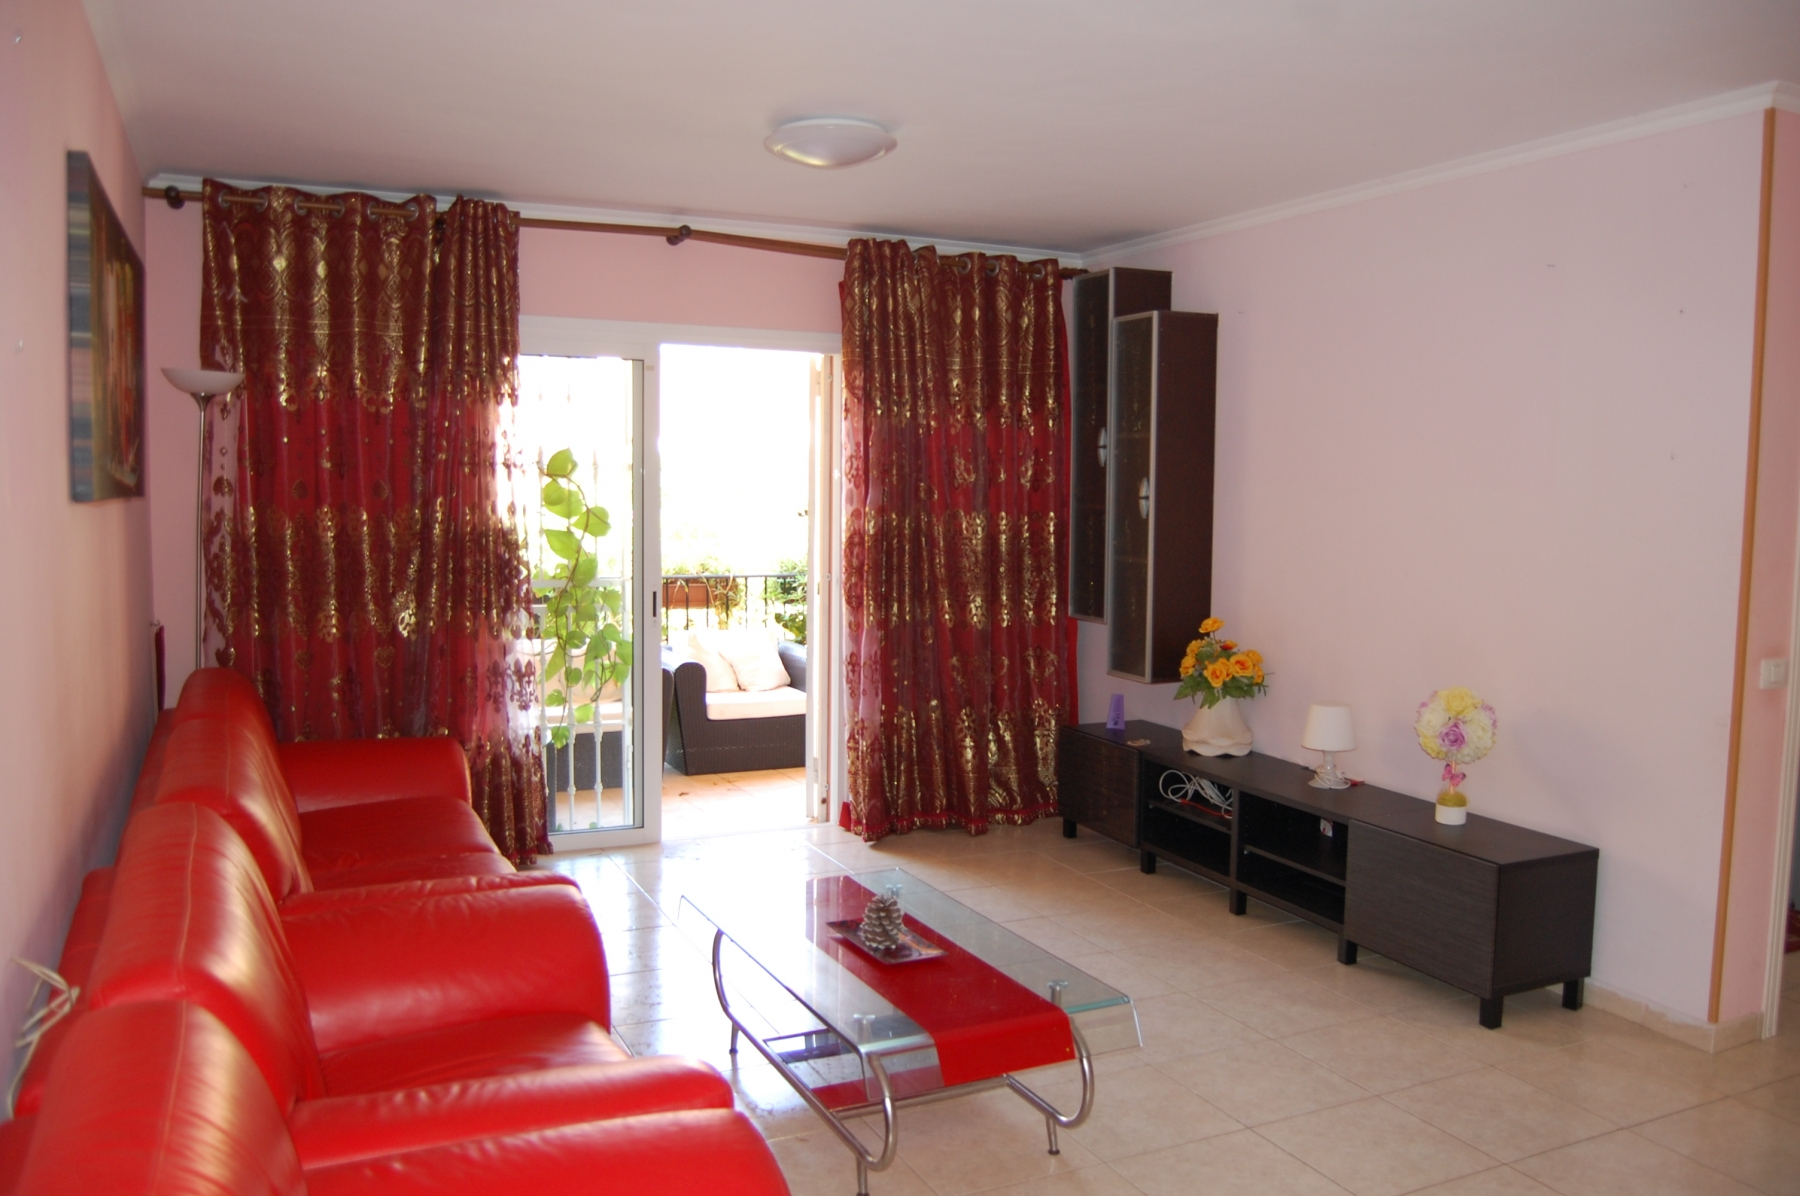 Properties for Sale in Tenerife, Canary Islands, Spain | SylkWayStar Real Estate. Townhouse 3 bedrooms 2 baths Madroñal. Image-24699